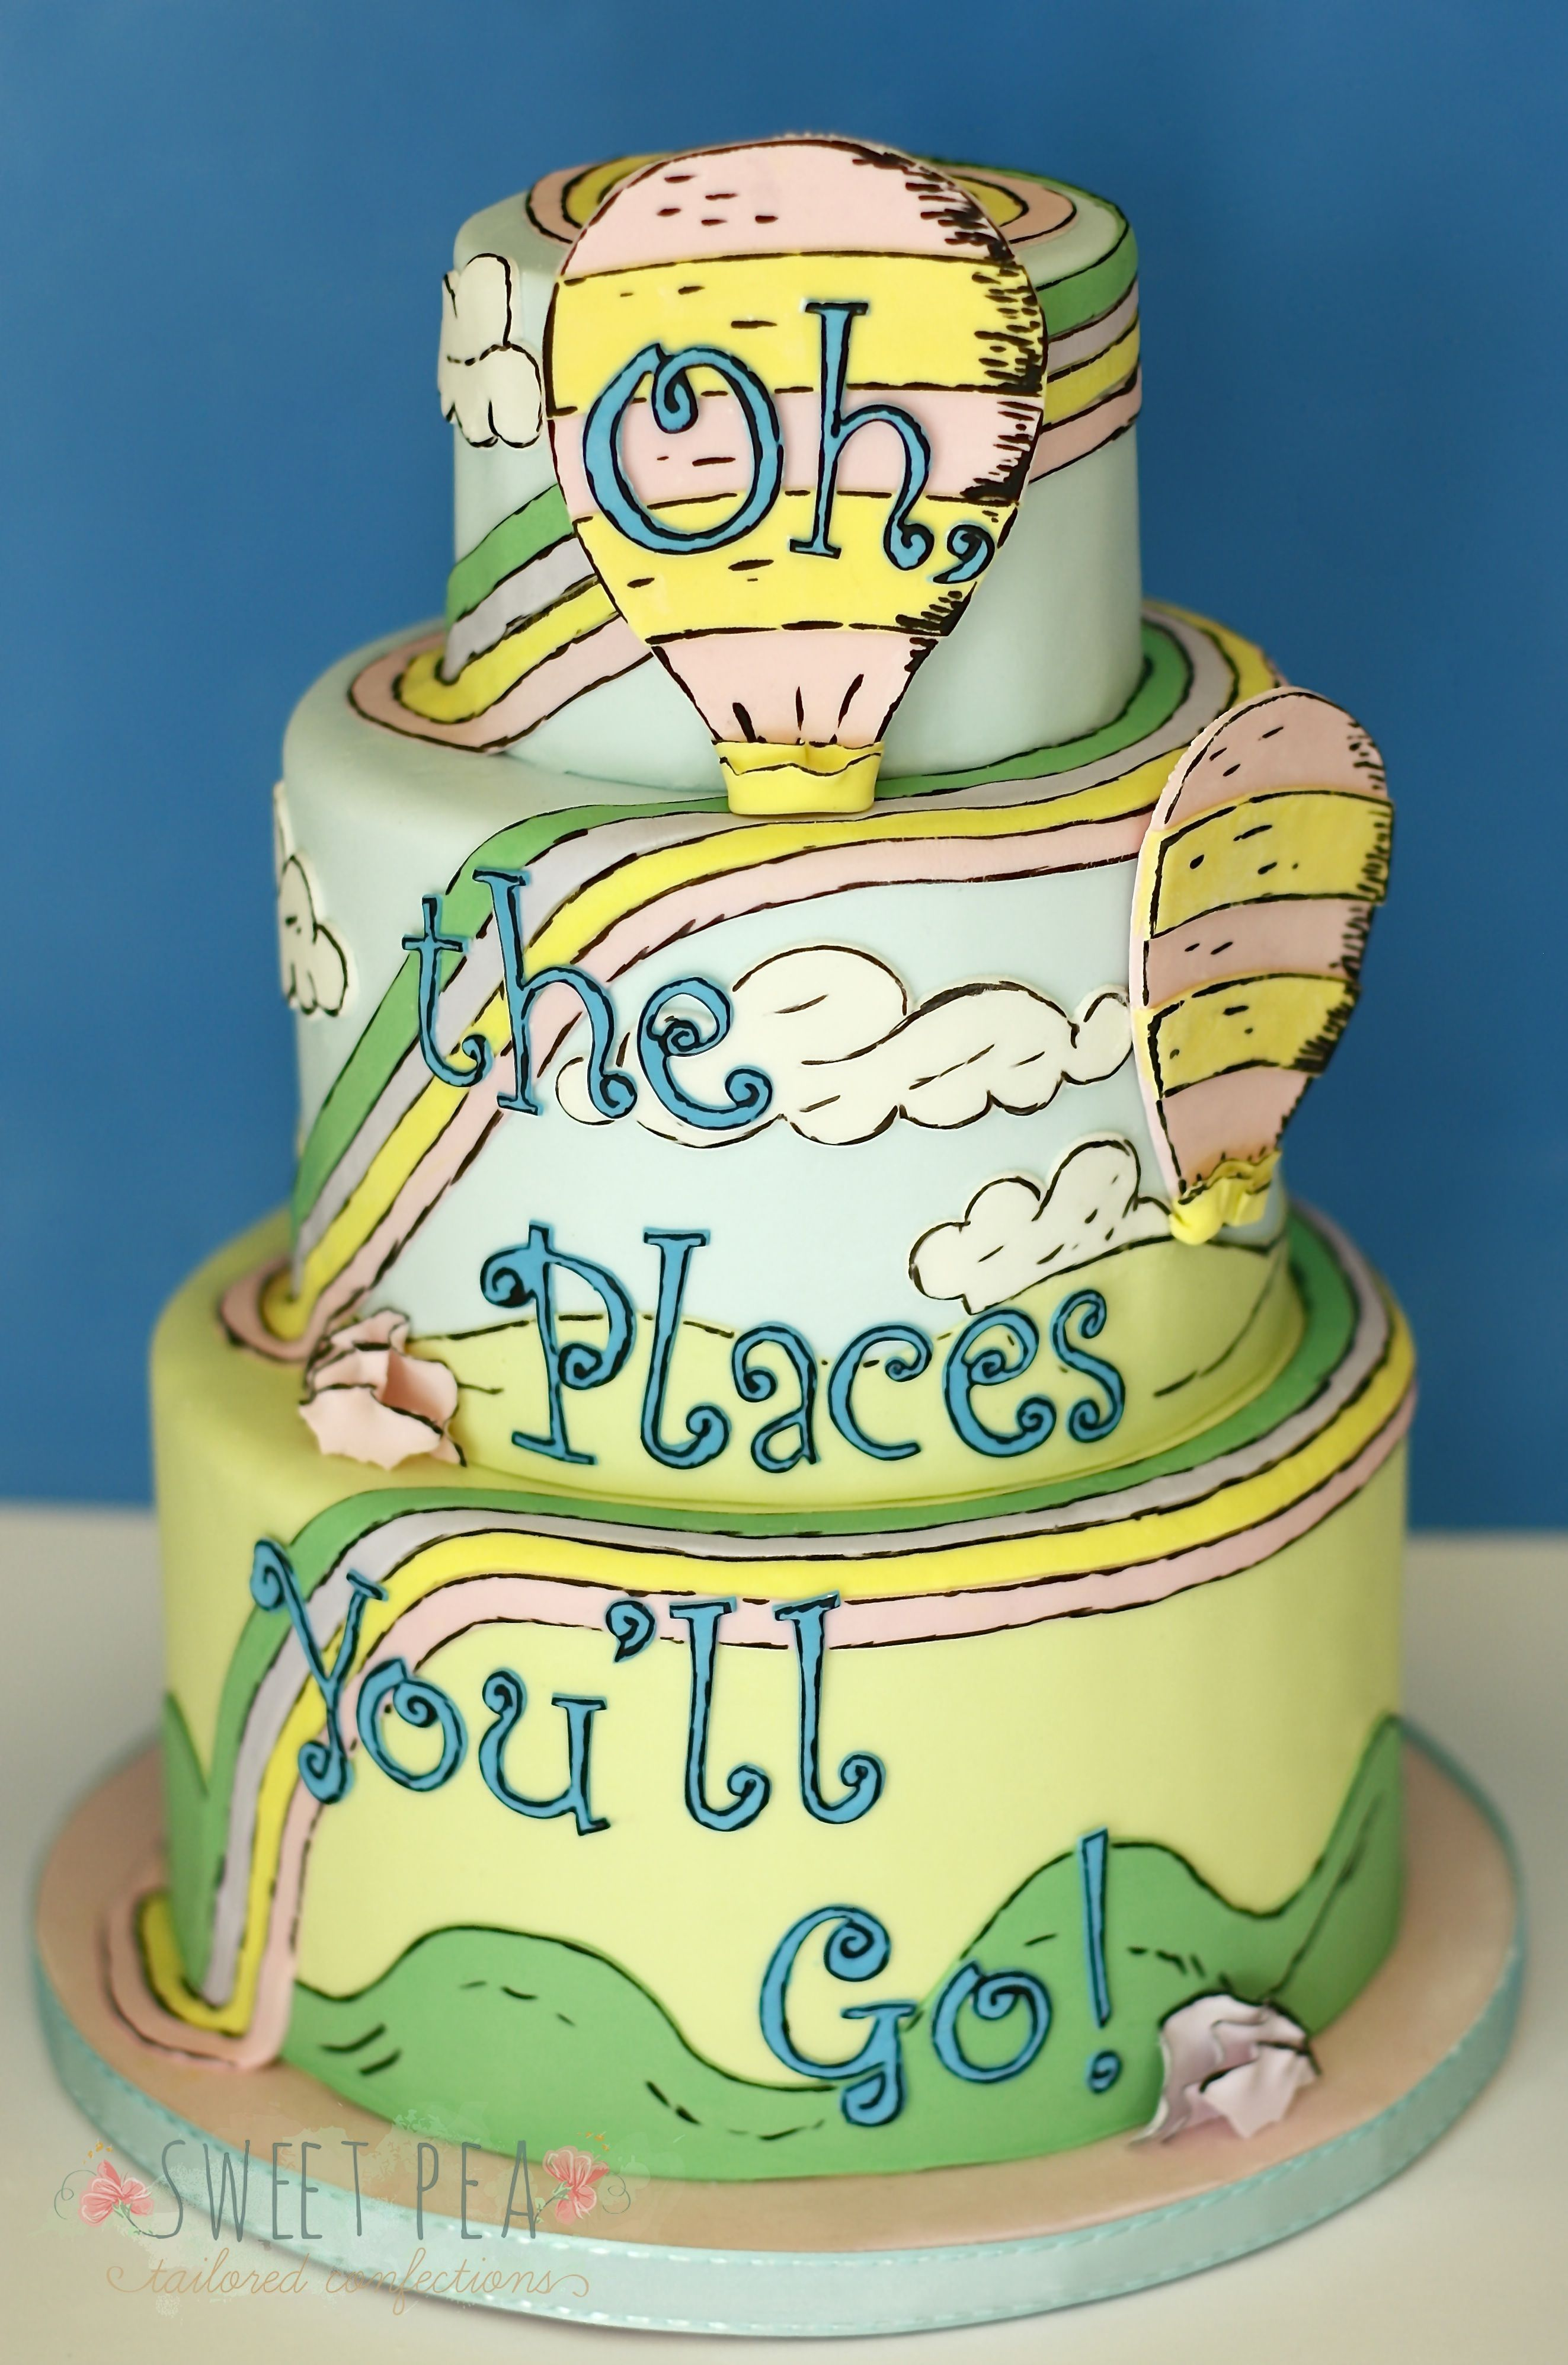 Pleasing Mg 0018 Graduation Cakes Seuss Cakes Dr Seuss Cake Personalised Birthday Cards Veneteletsinfo